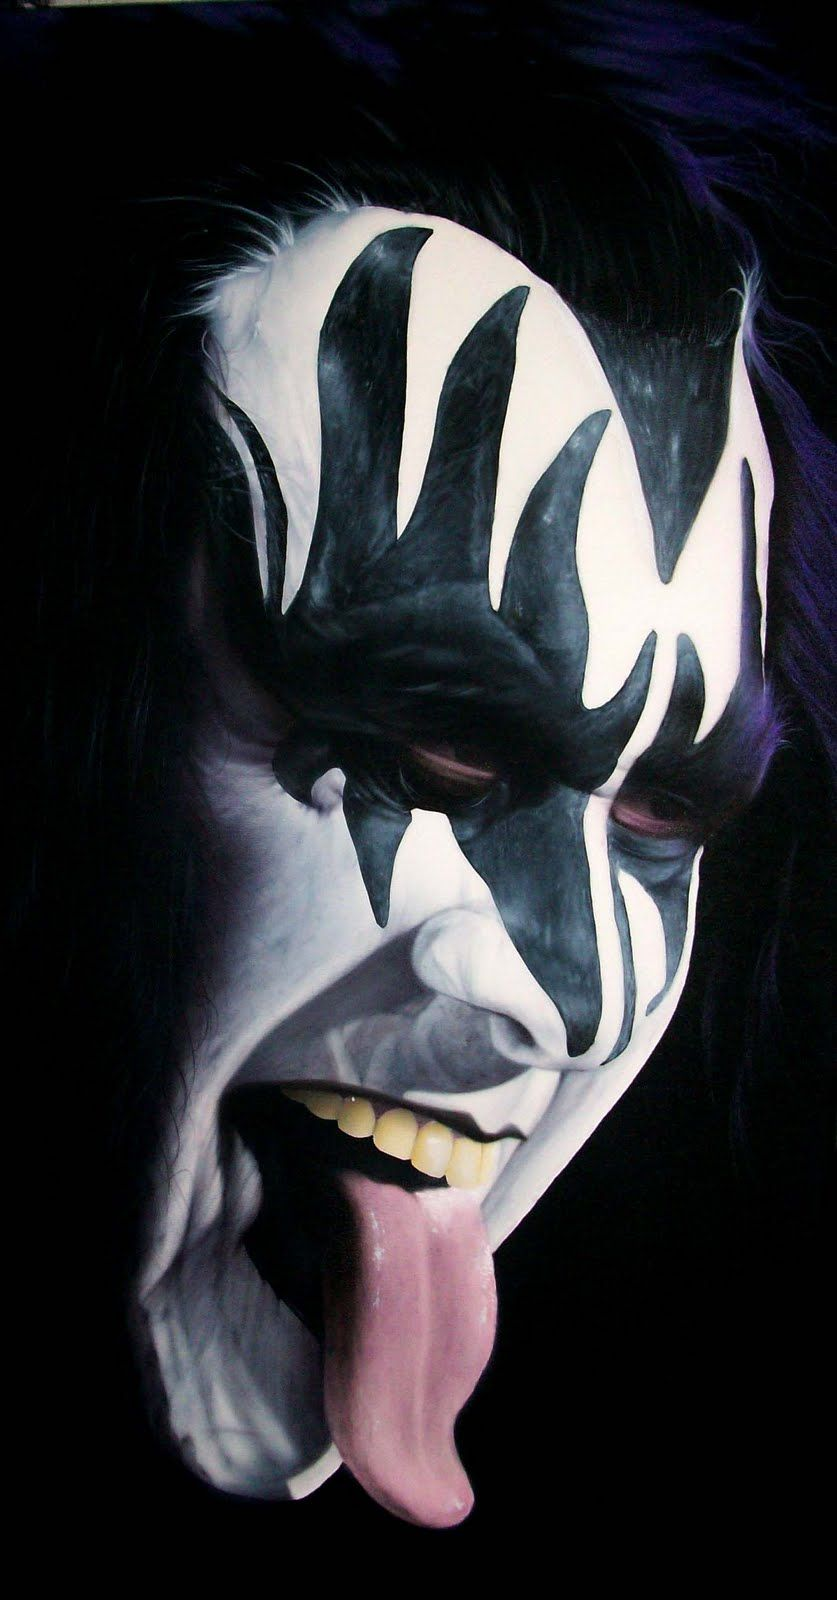 genesimmons got a spanking for climbing onto the